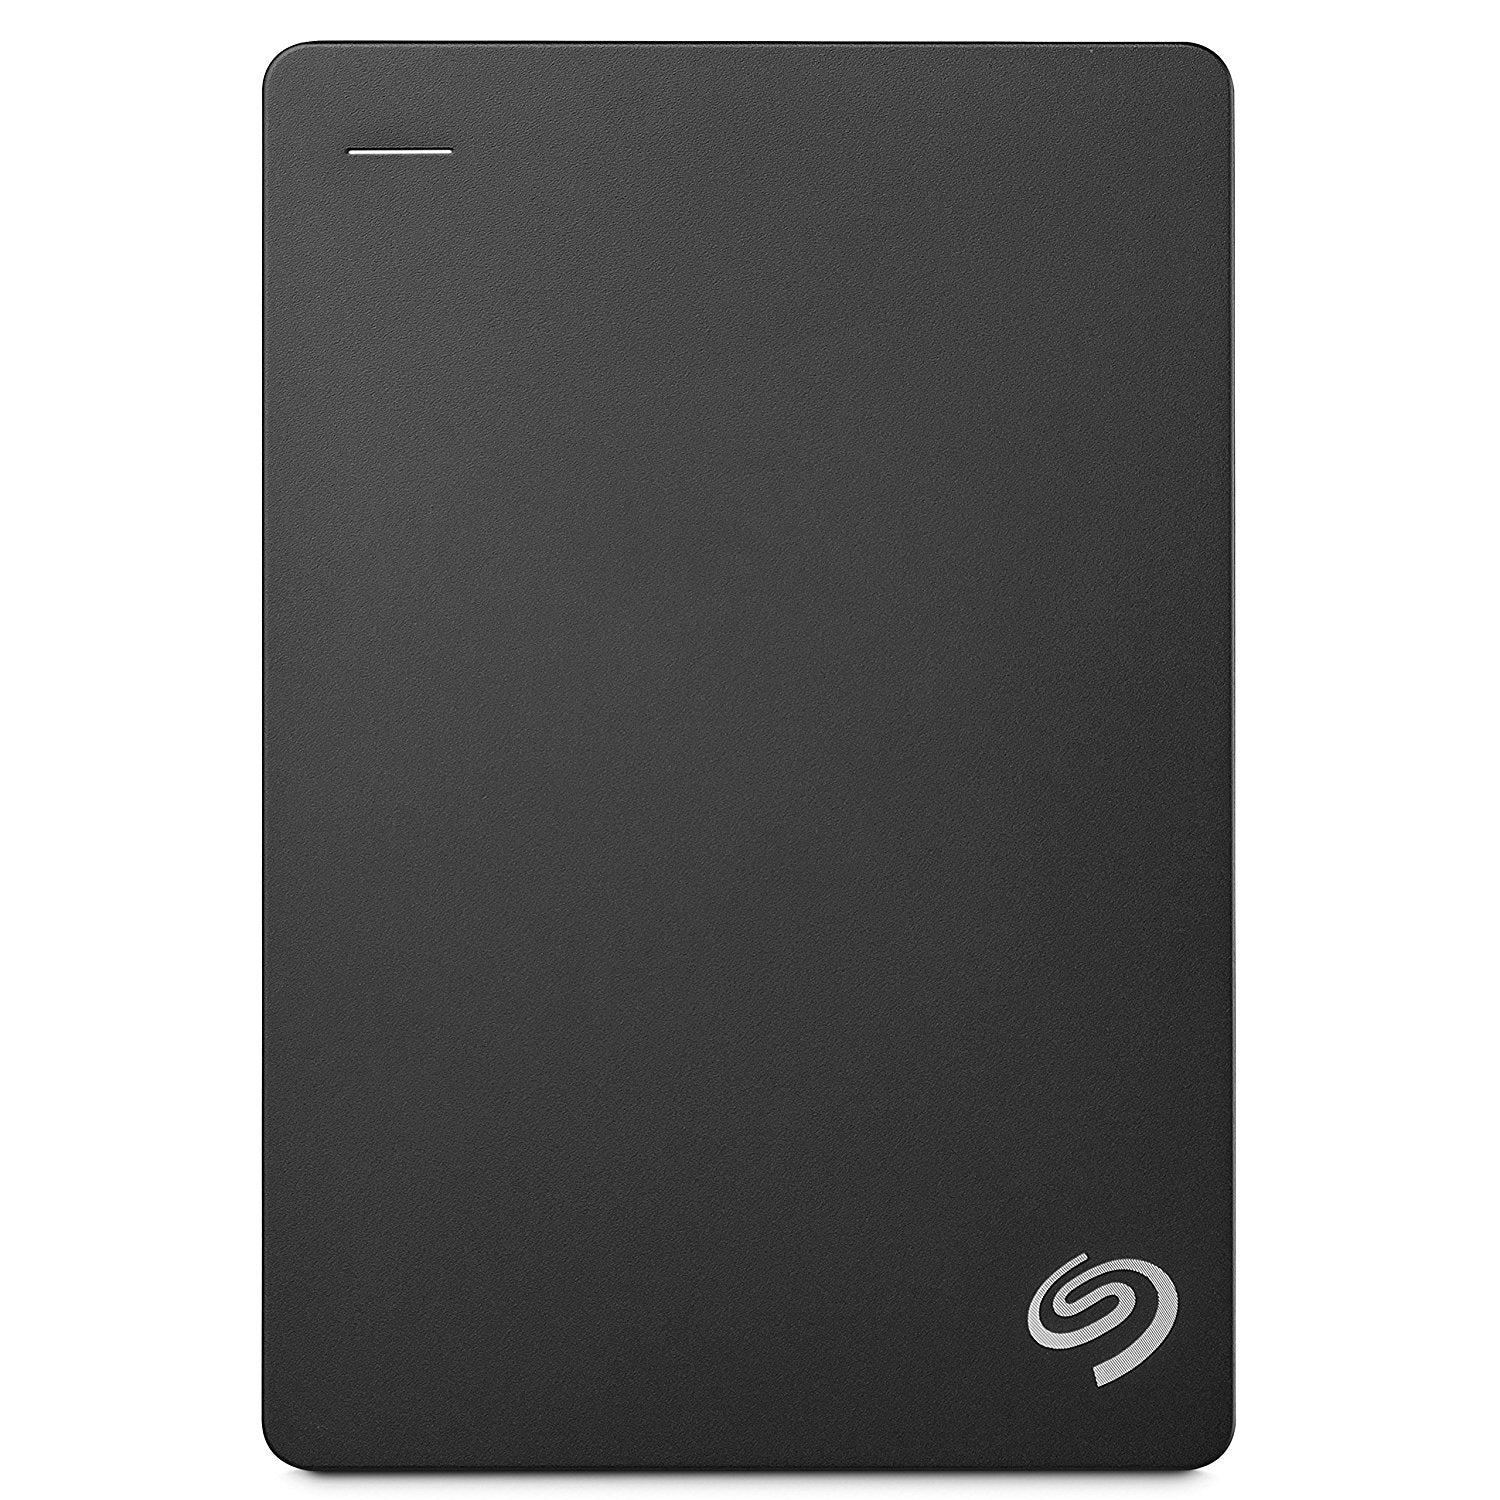 Seagate Backup Plus Slim 5TB Portable External Hard Drive (Black)